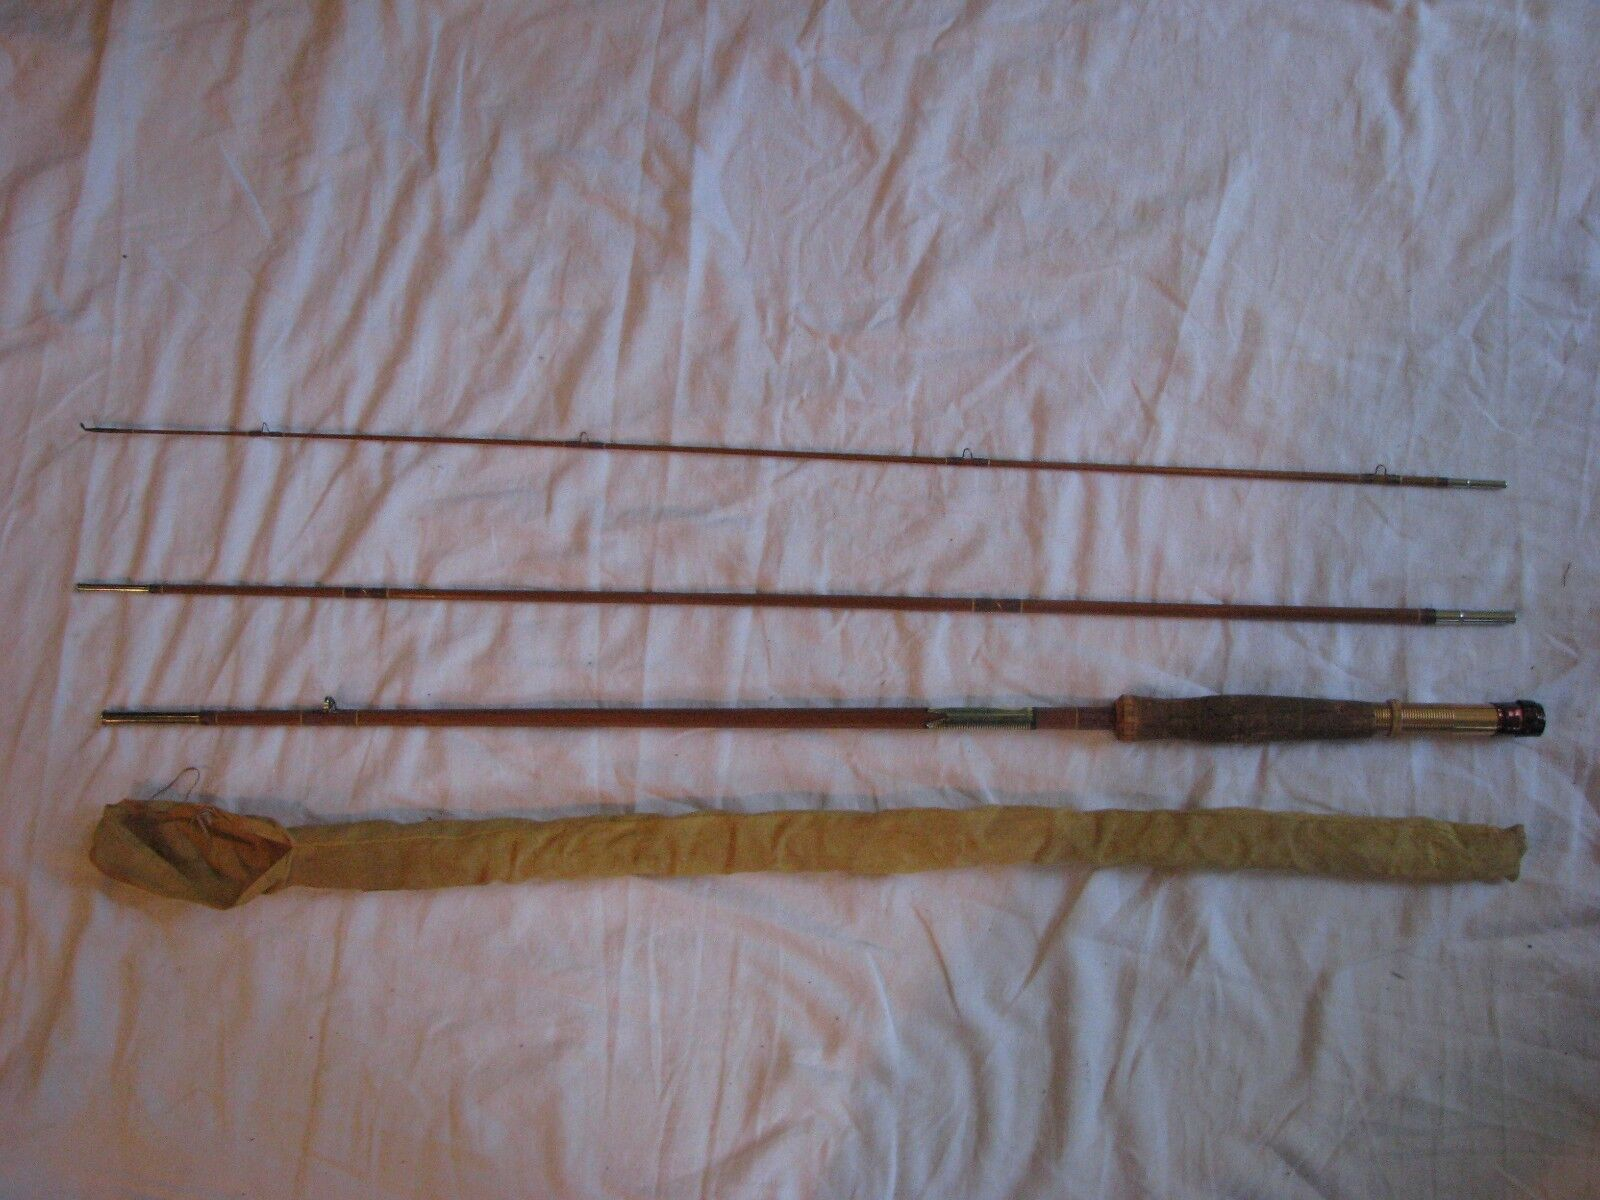 Vintage Stream Master Tokyo 3 pièces Bambou 8 FT (environ 2.44 m) Fly Rod original manches MIJ